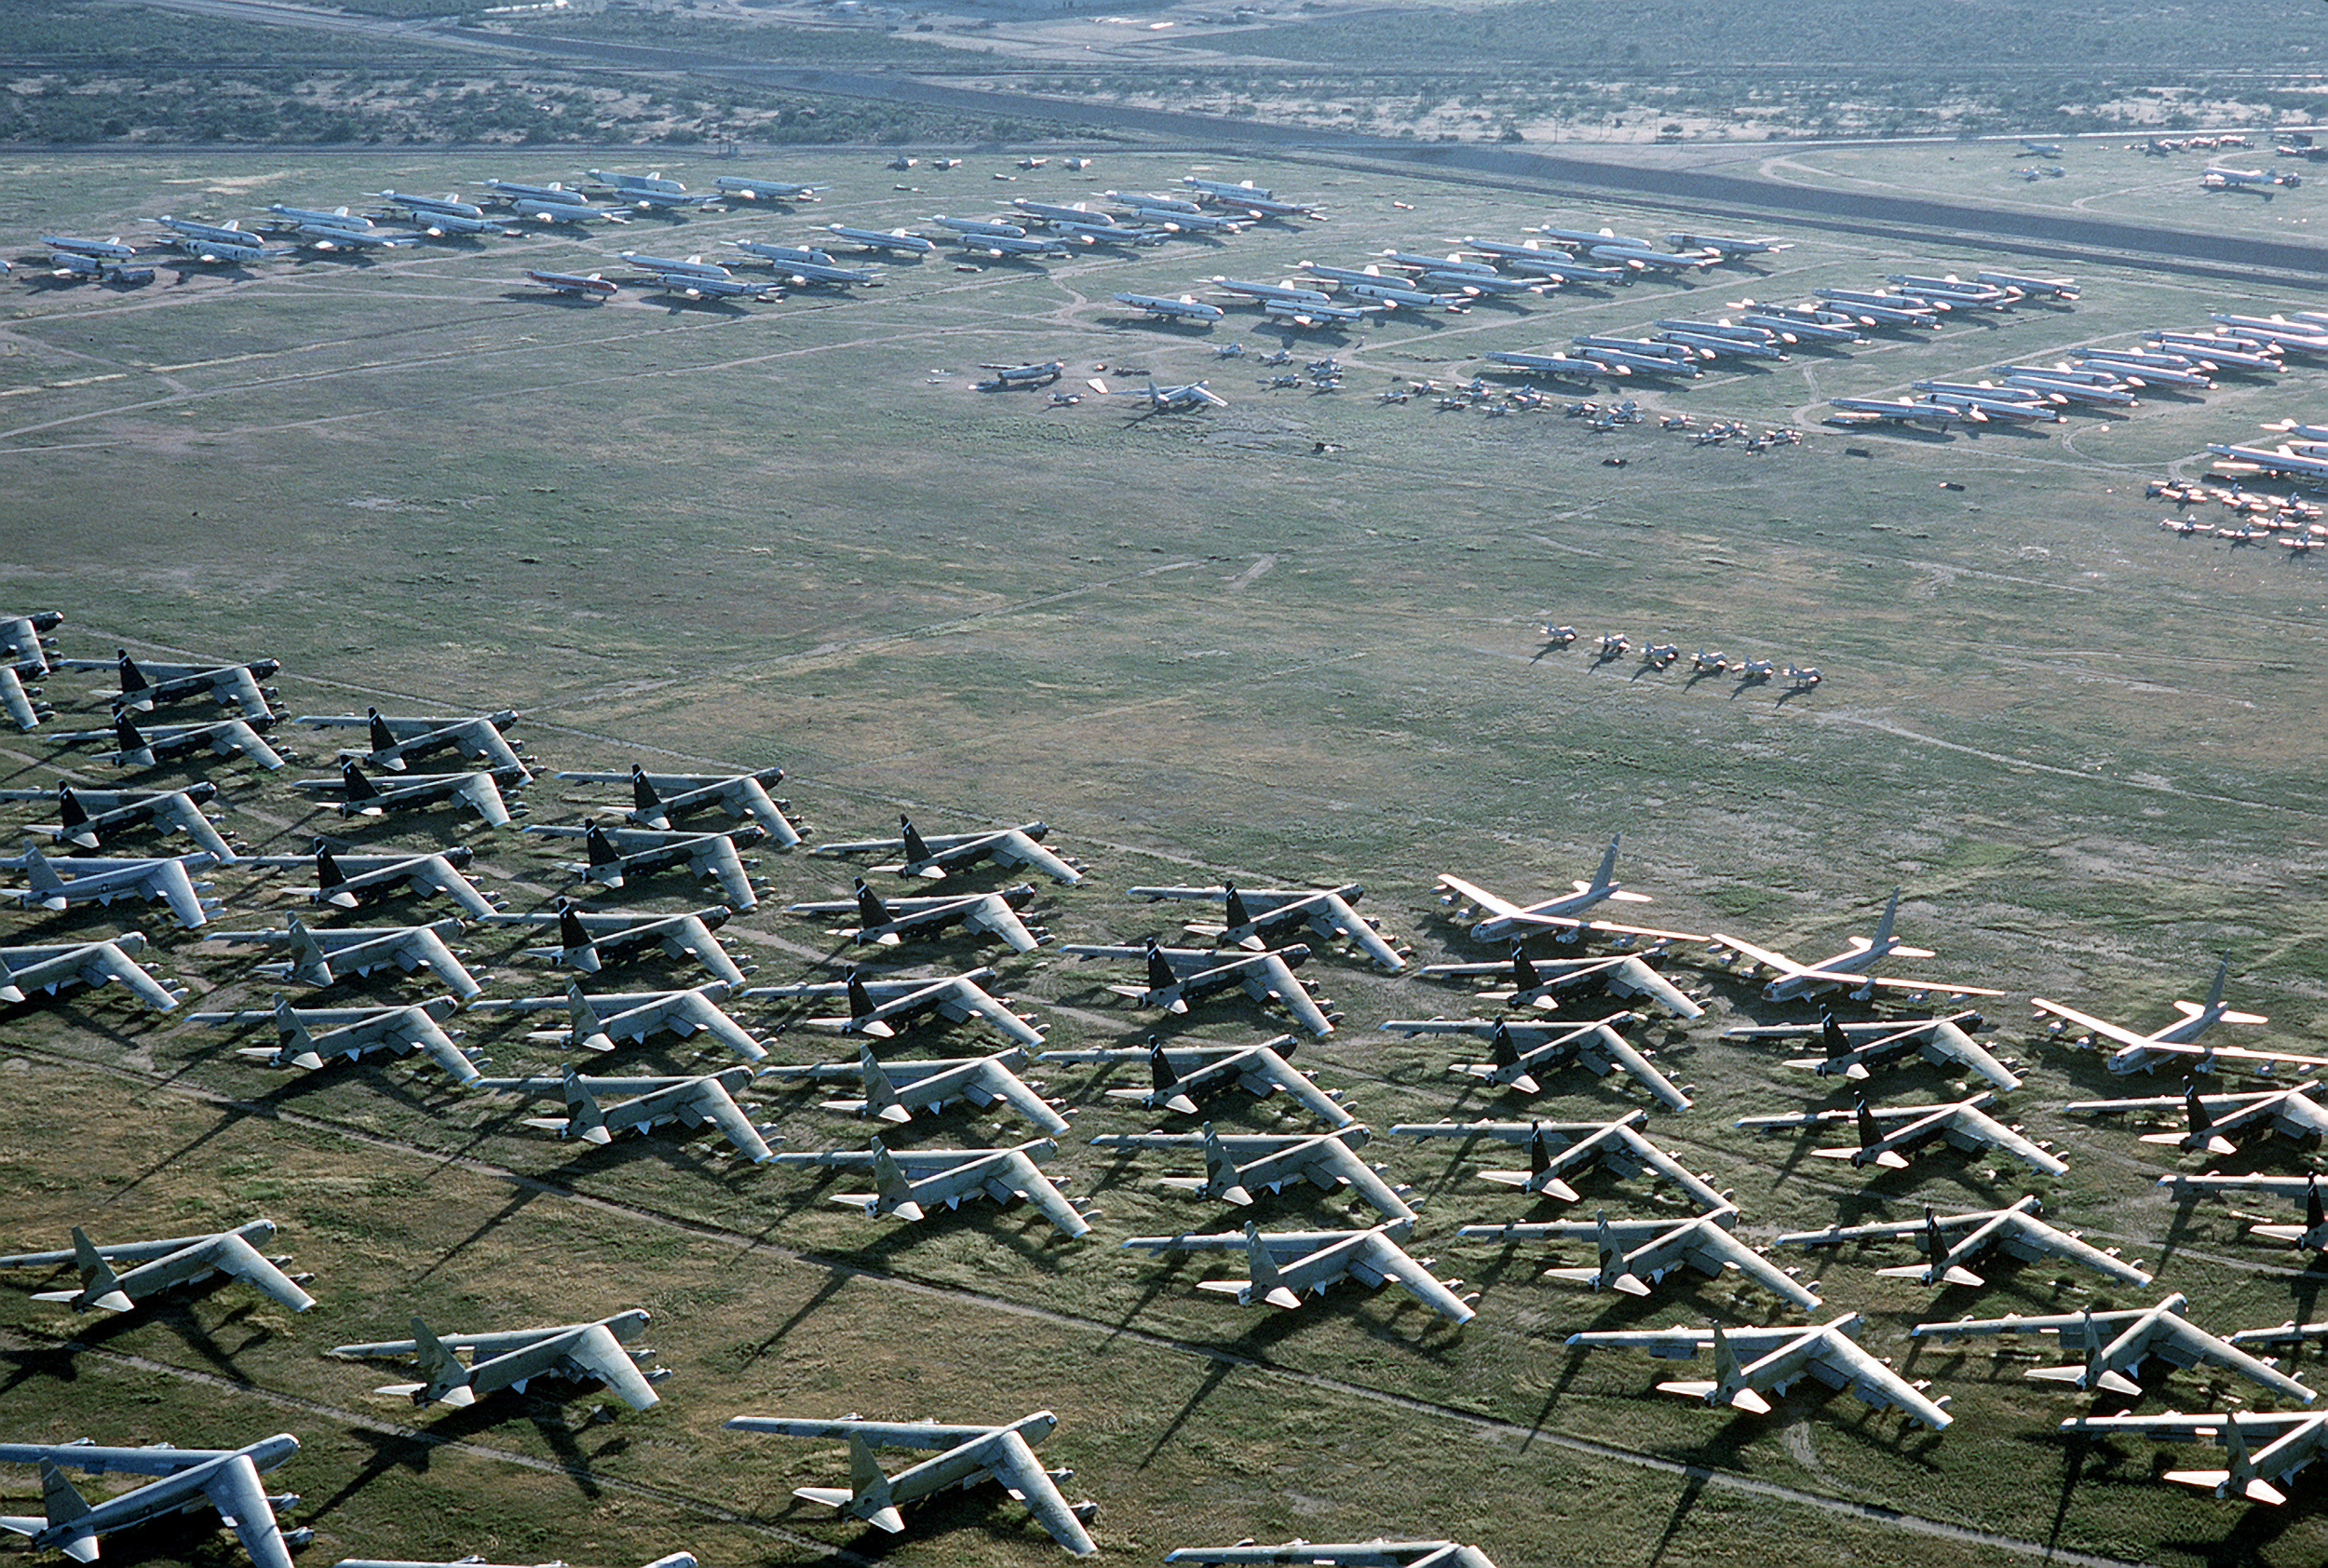 An_aerial_view_of_some_of_the_more_than_2,500_aircraft_from_all_services_-are_stored_at_the_Aerospace_Maintenance_and_Regeneration_Center_DF-ST-89-10584.jpg